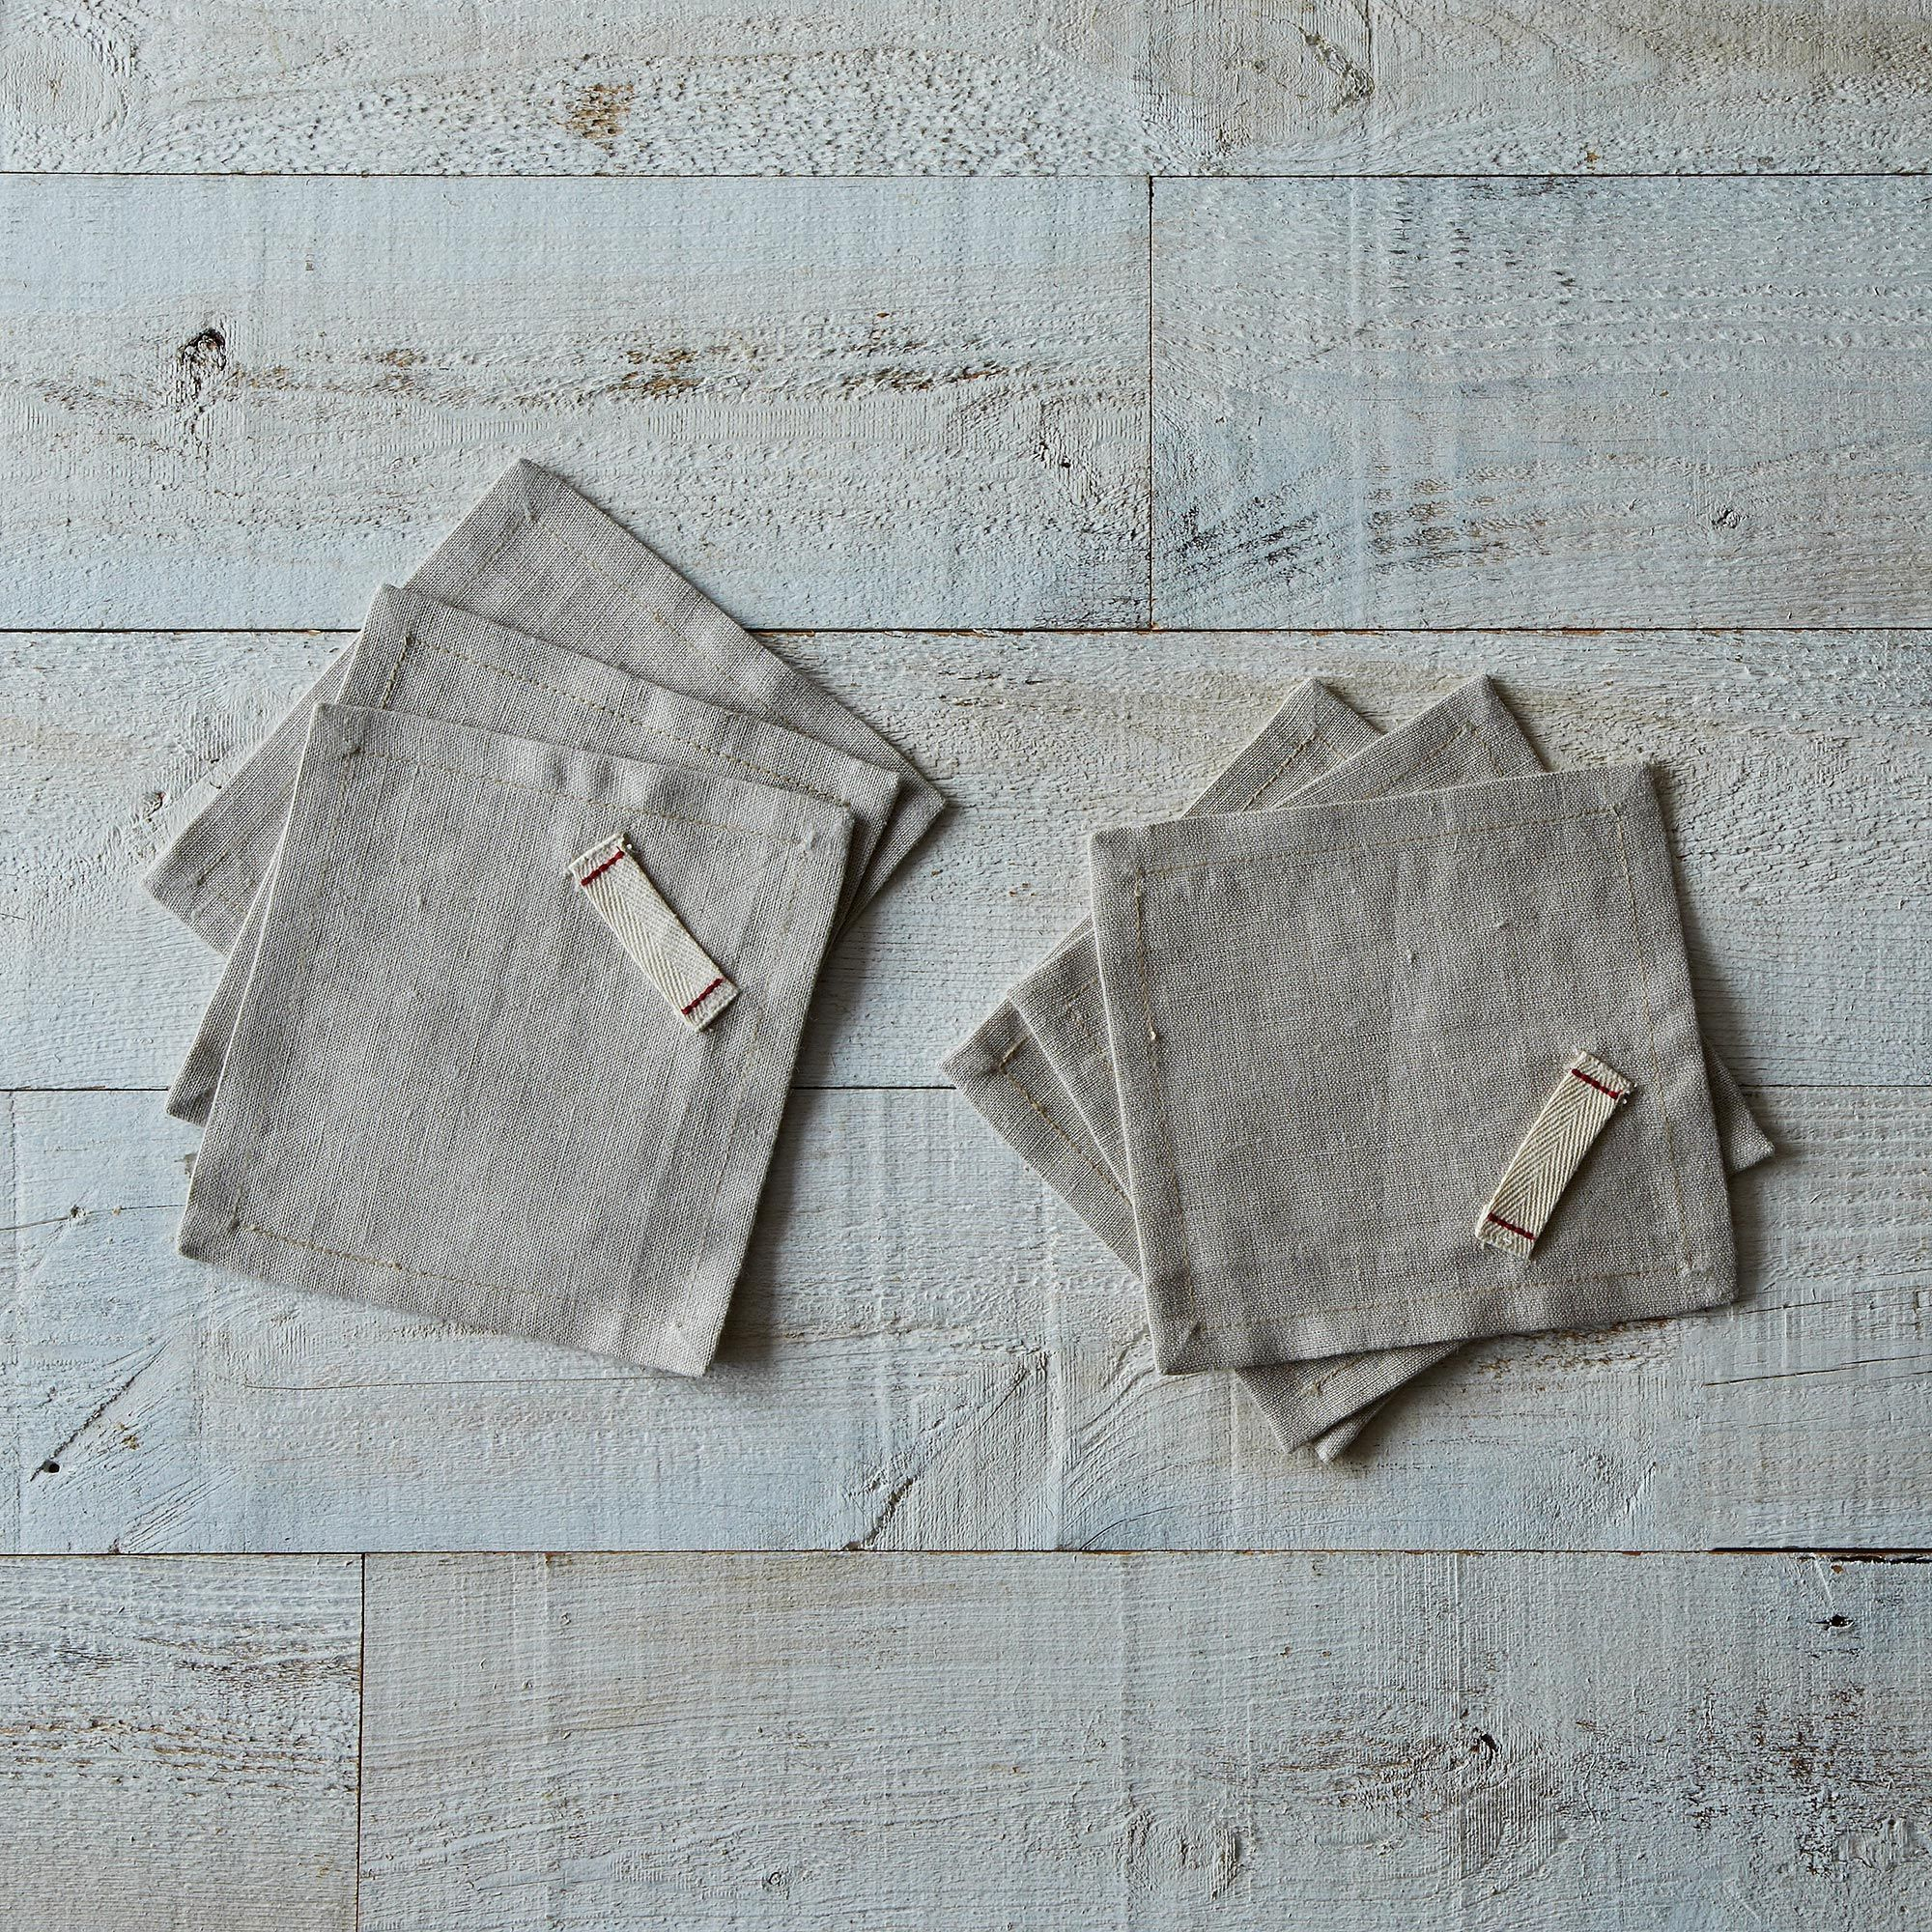 A207b727 1c85 4fe3 8a18 faa0587b3157  2013 0930 icemilk aprons heirloomed linen cocktail napkins set of 6 010